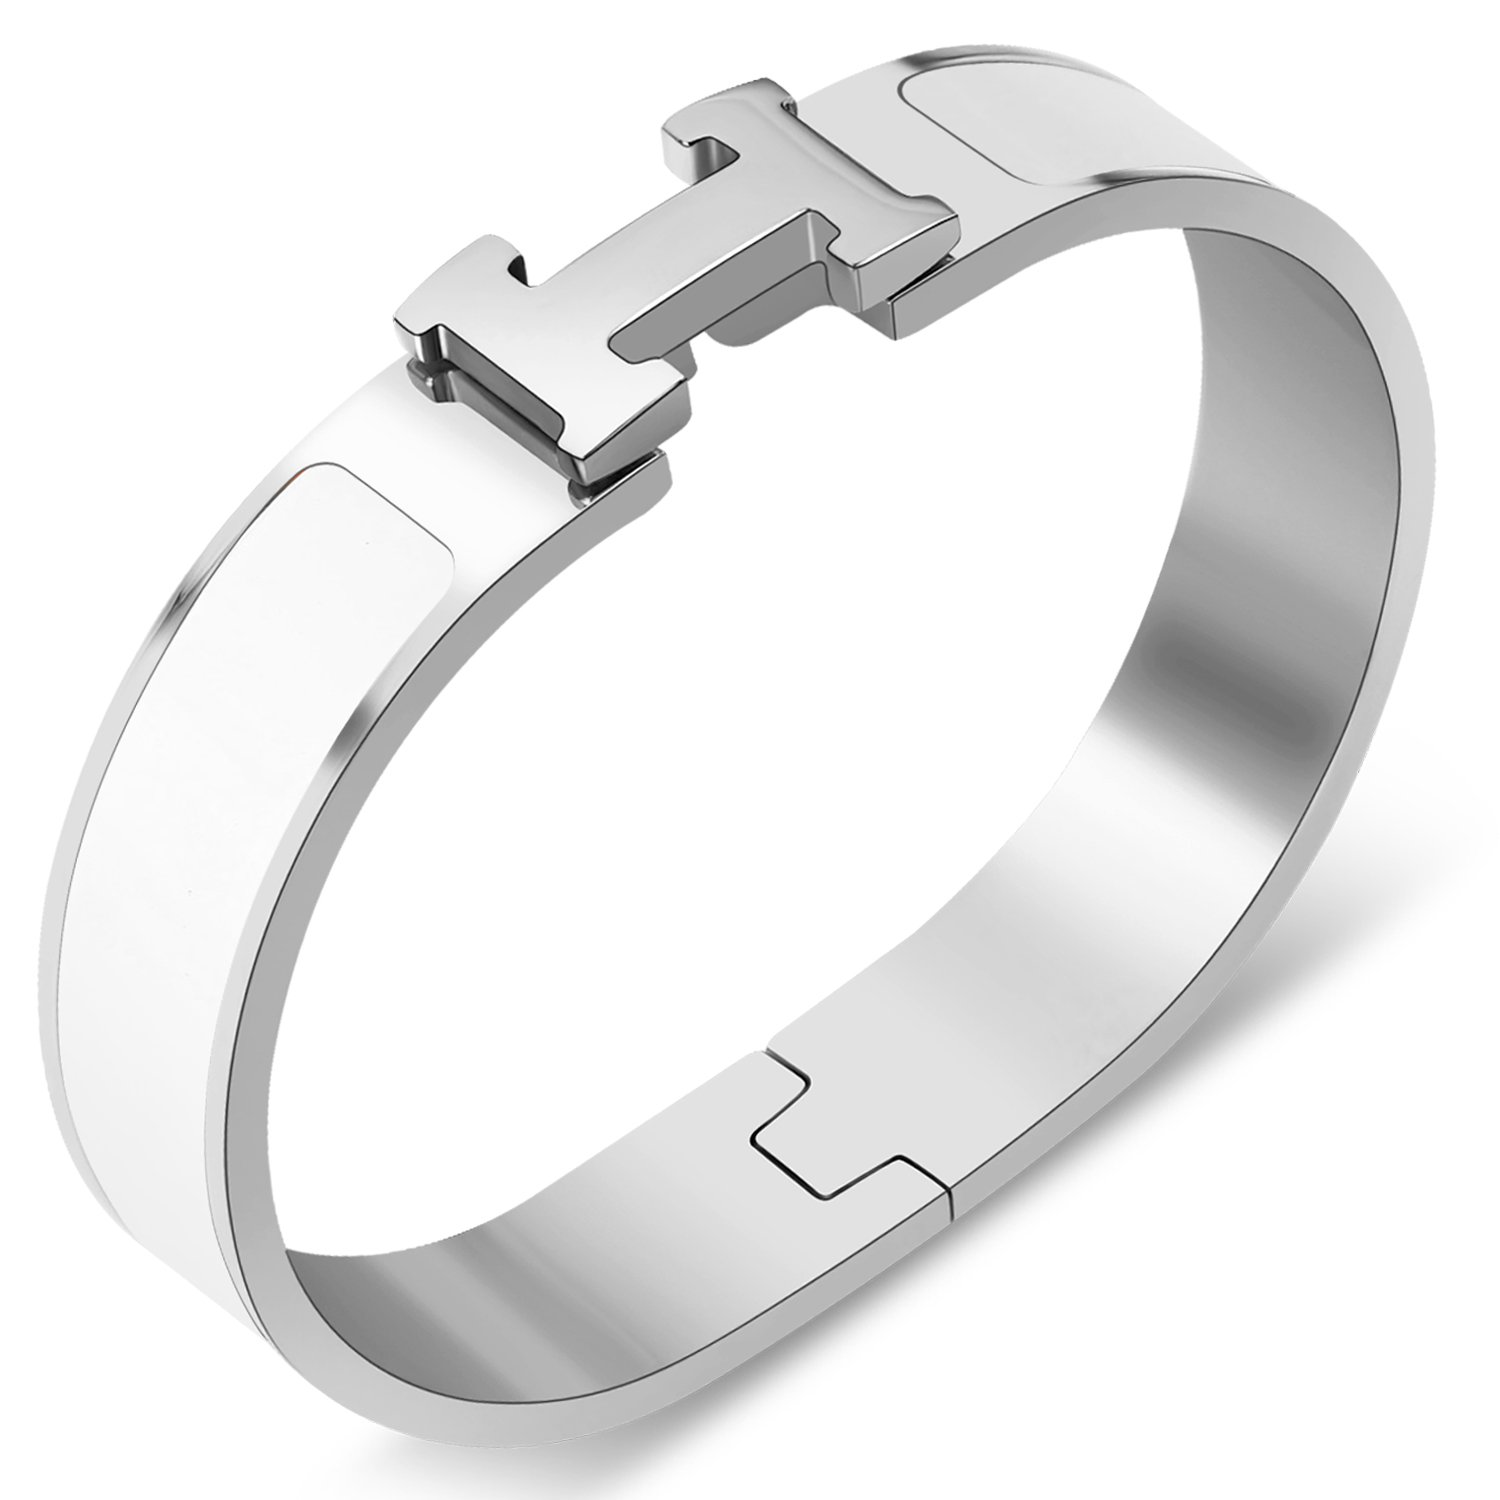 Yeemer Colorful Buckle Bracelet Bangle for Women, Couple, Girls, Mom and Teens (Silver&White color)